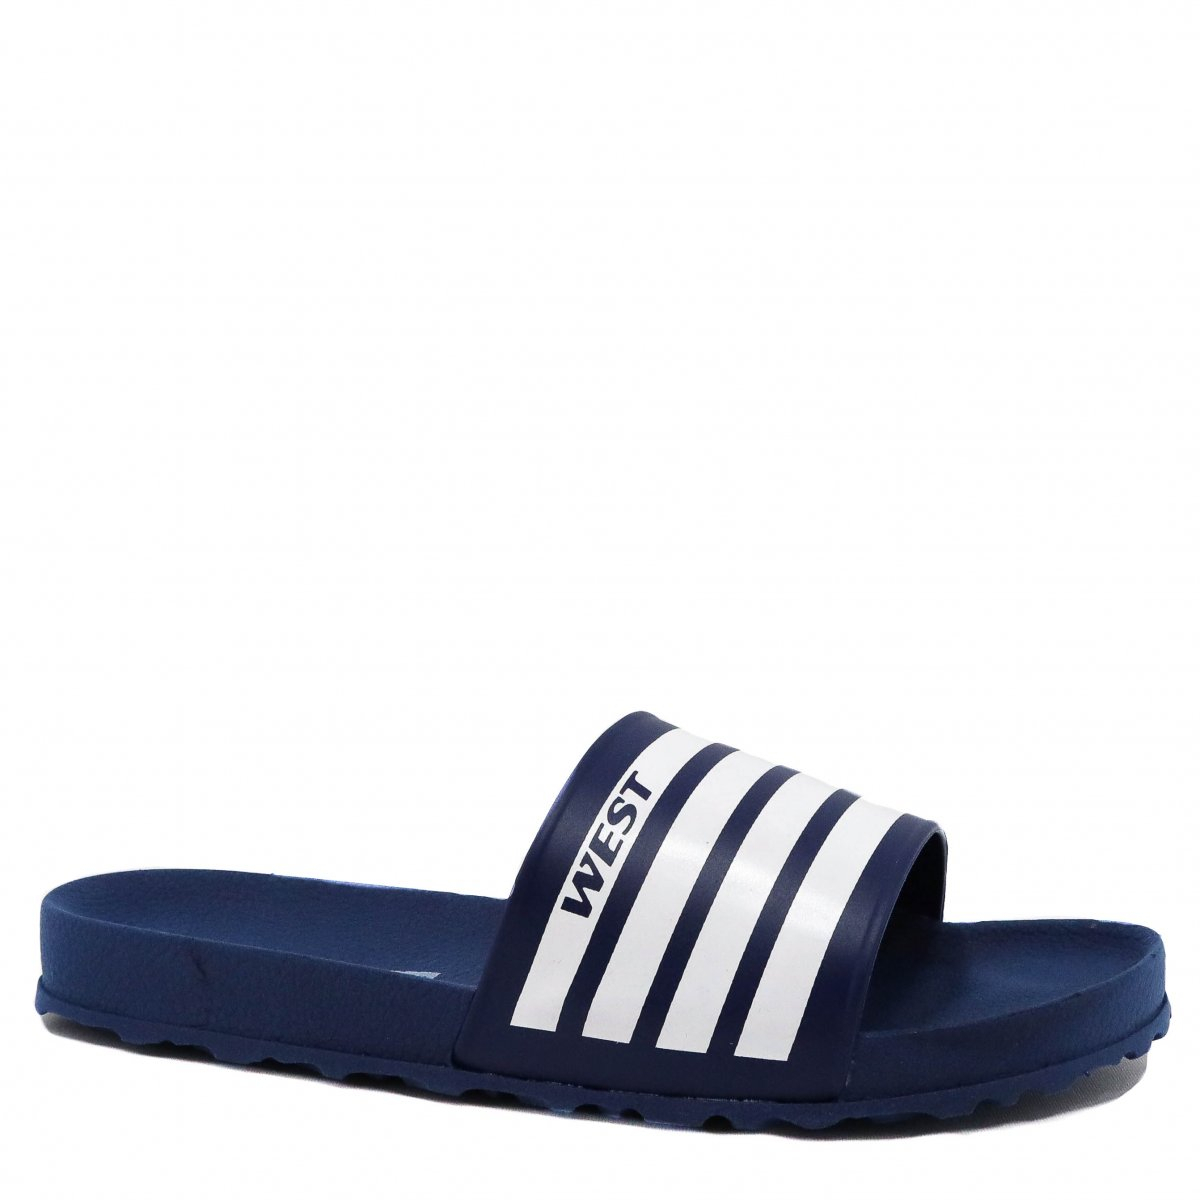 Chinelo West Coast Slide Zuma Azul